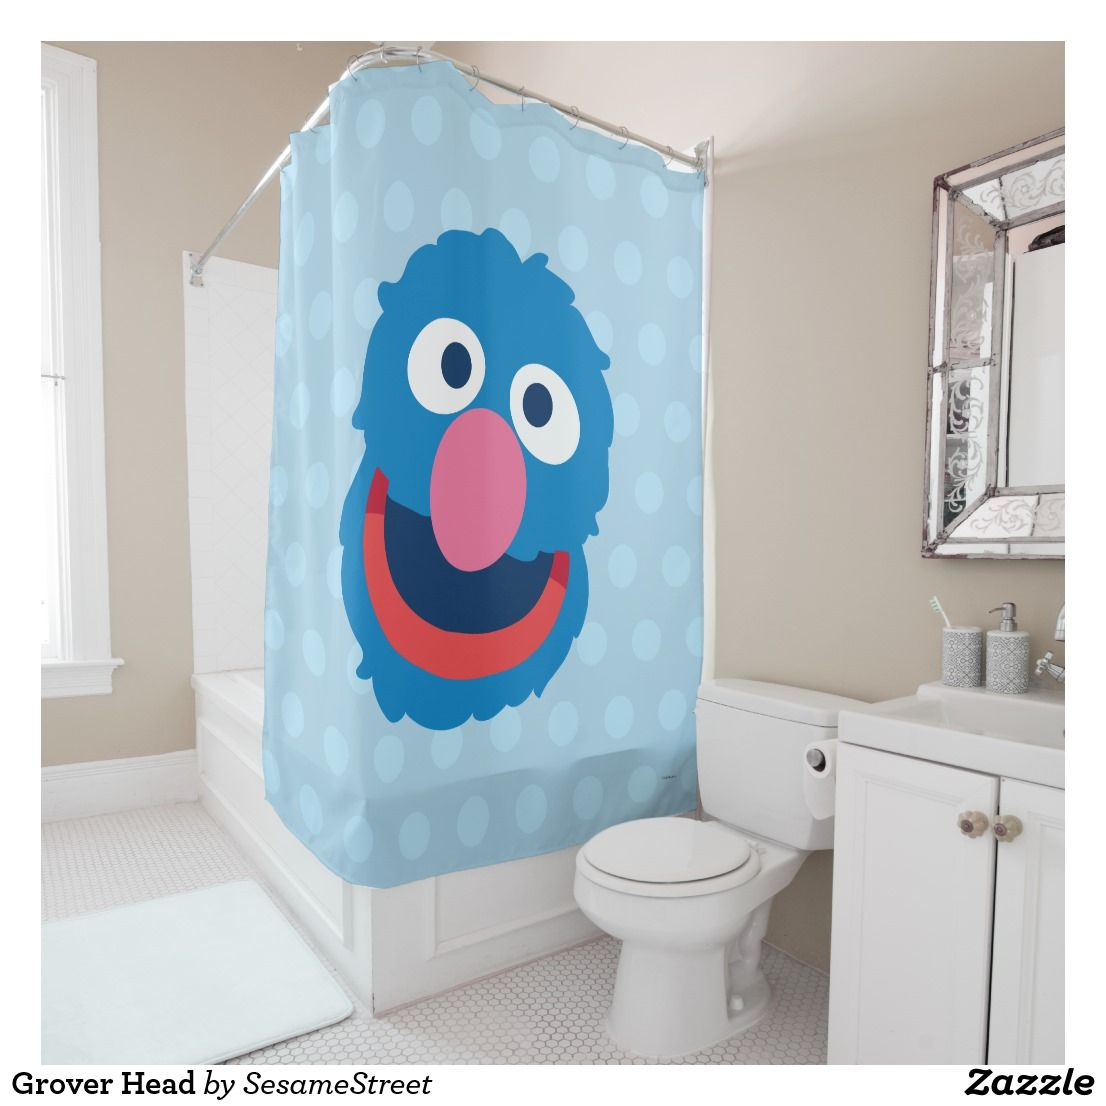 Grover Head Shower Curtain Various Fun Gifts and Presents for Kids